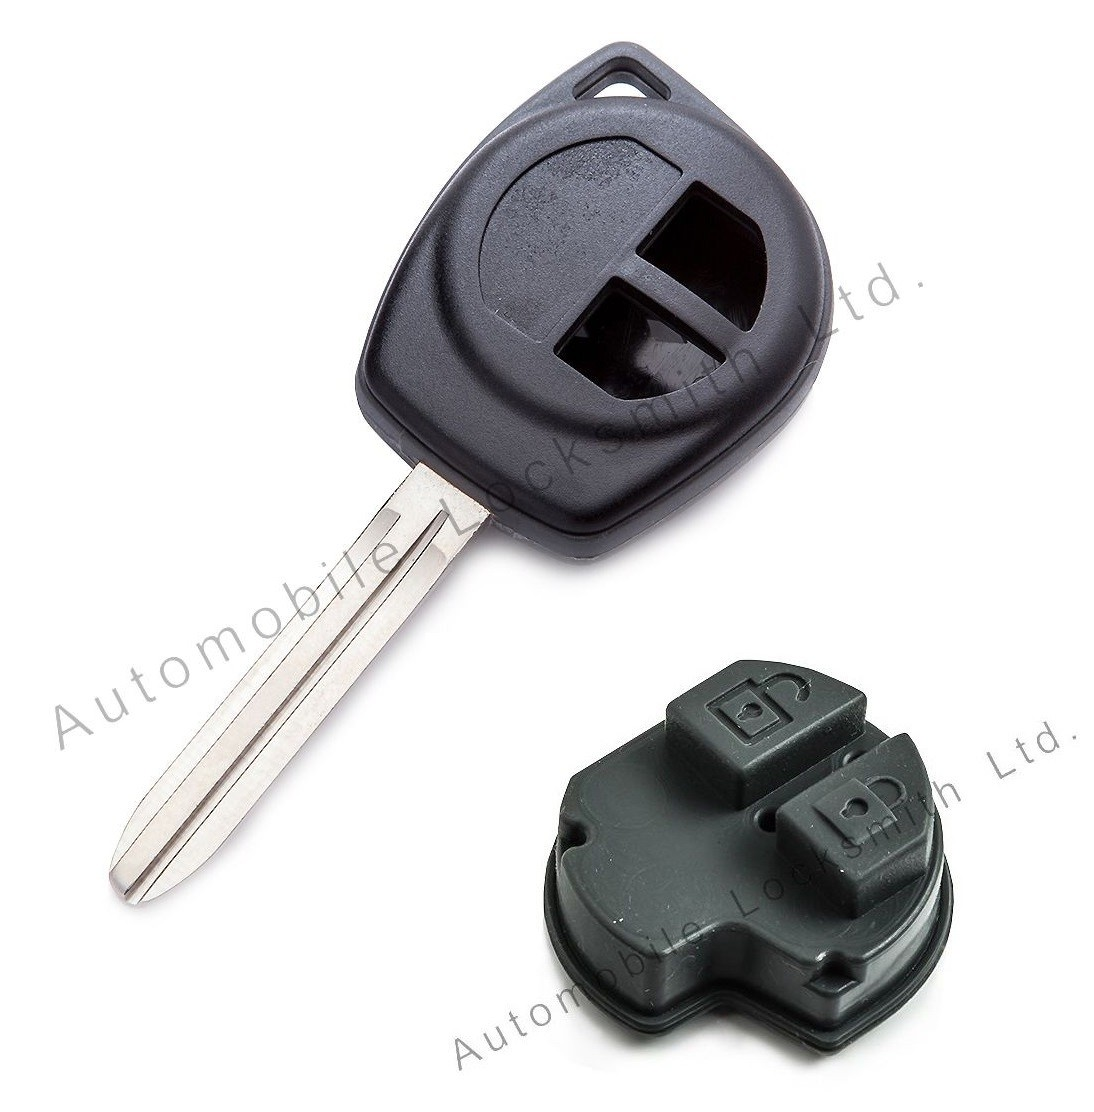 for Suzuki Fiat Vauxhall Opel 2 button remote key fob shell blade S43 rubber pad